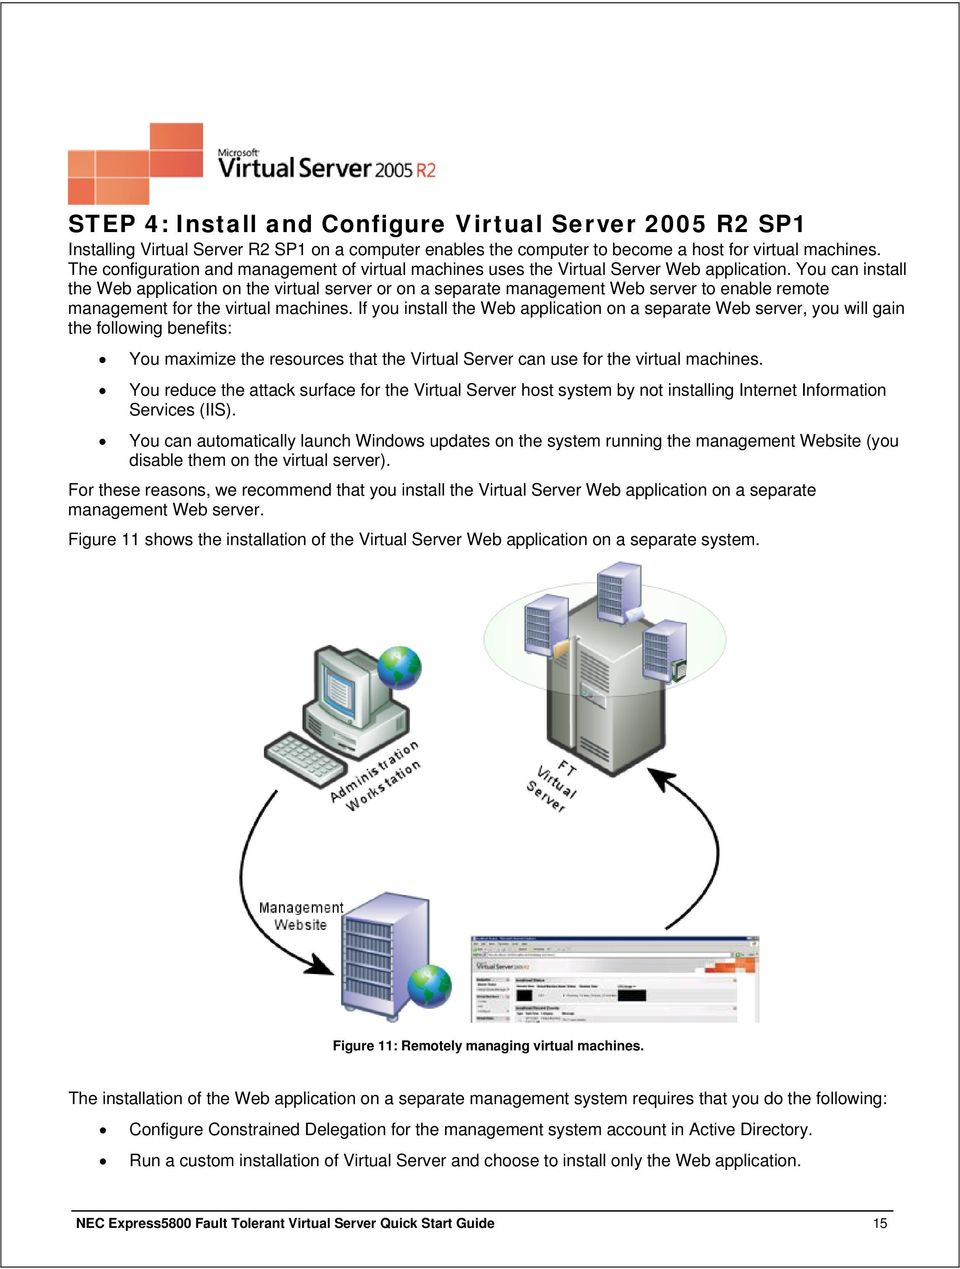 You can install the Web application on the virtual server or on a separate management Web server to enable remote management for the virtual machines.